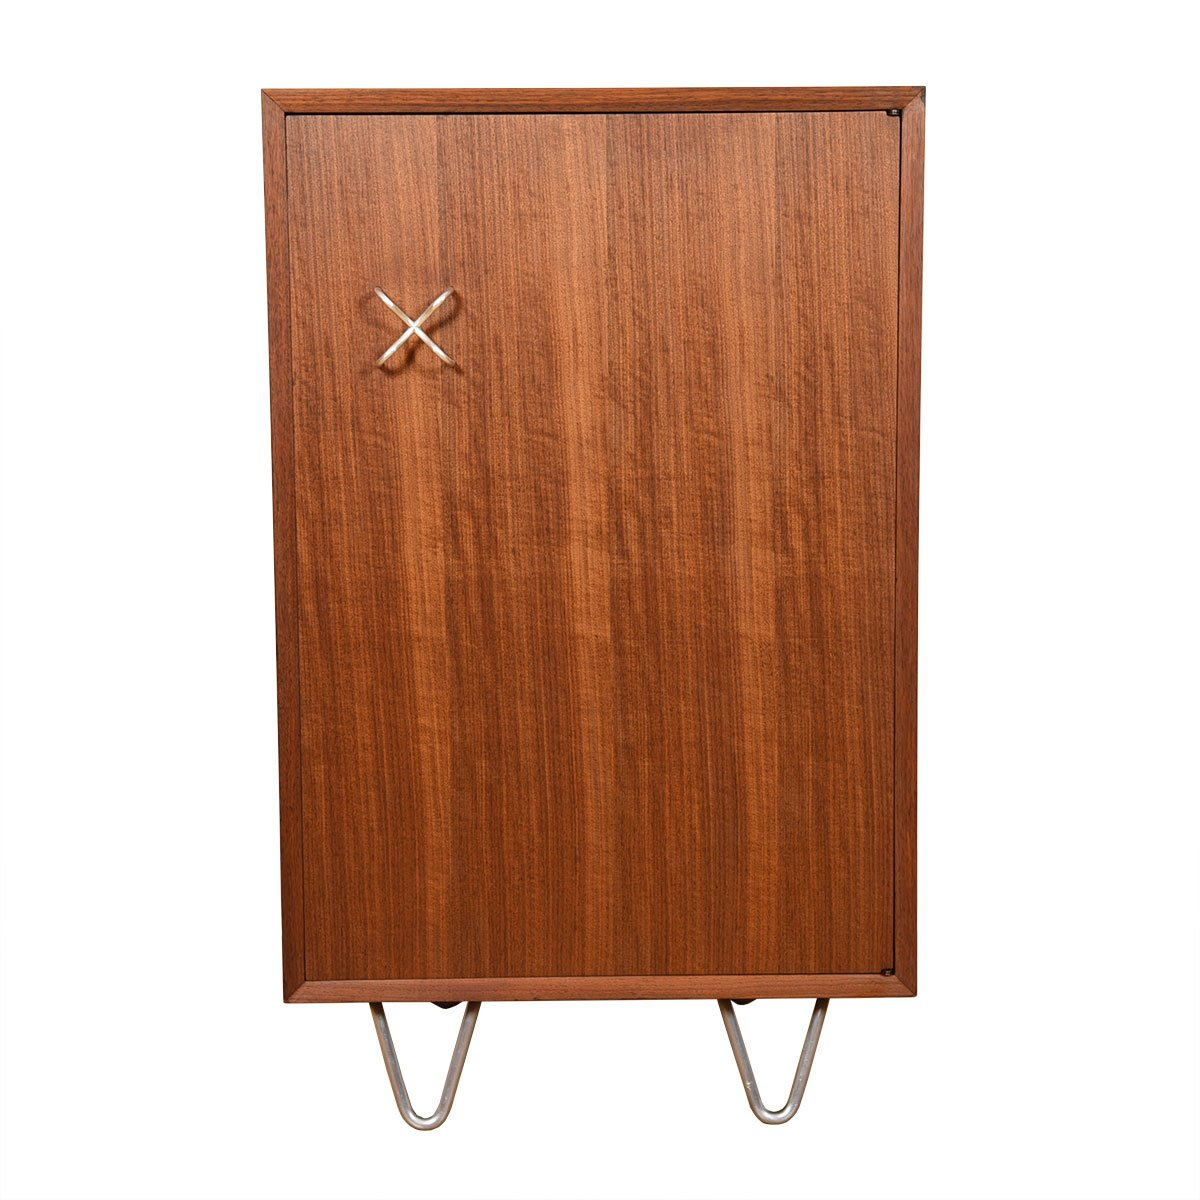 Herman Miller Walnut Bar / Storage Cabinet with Hairpin Legs